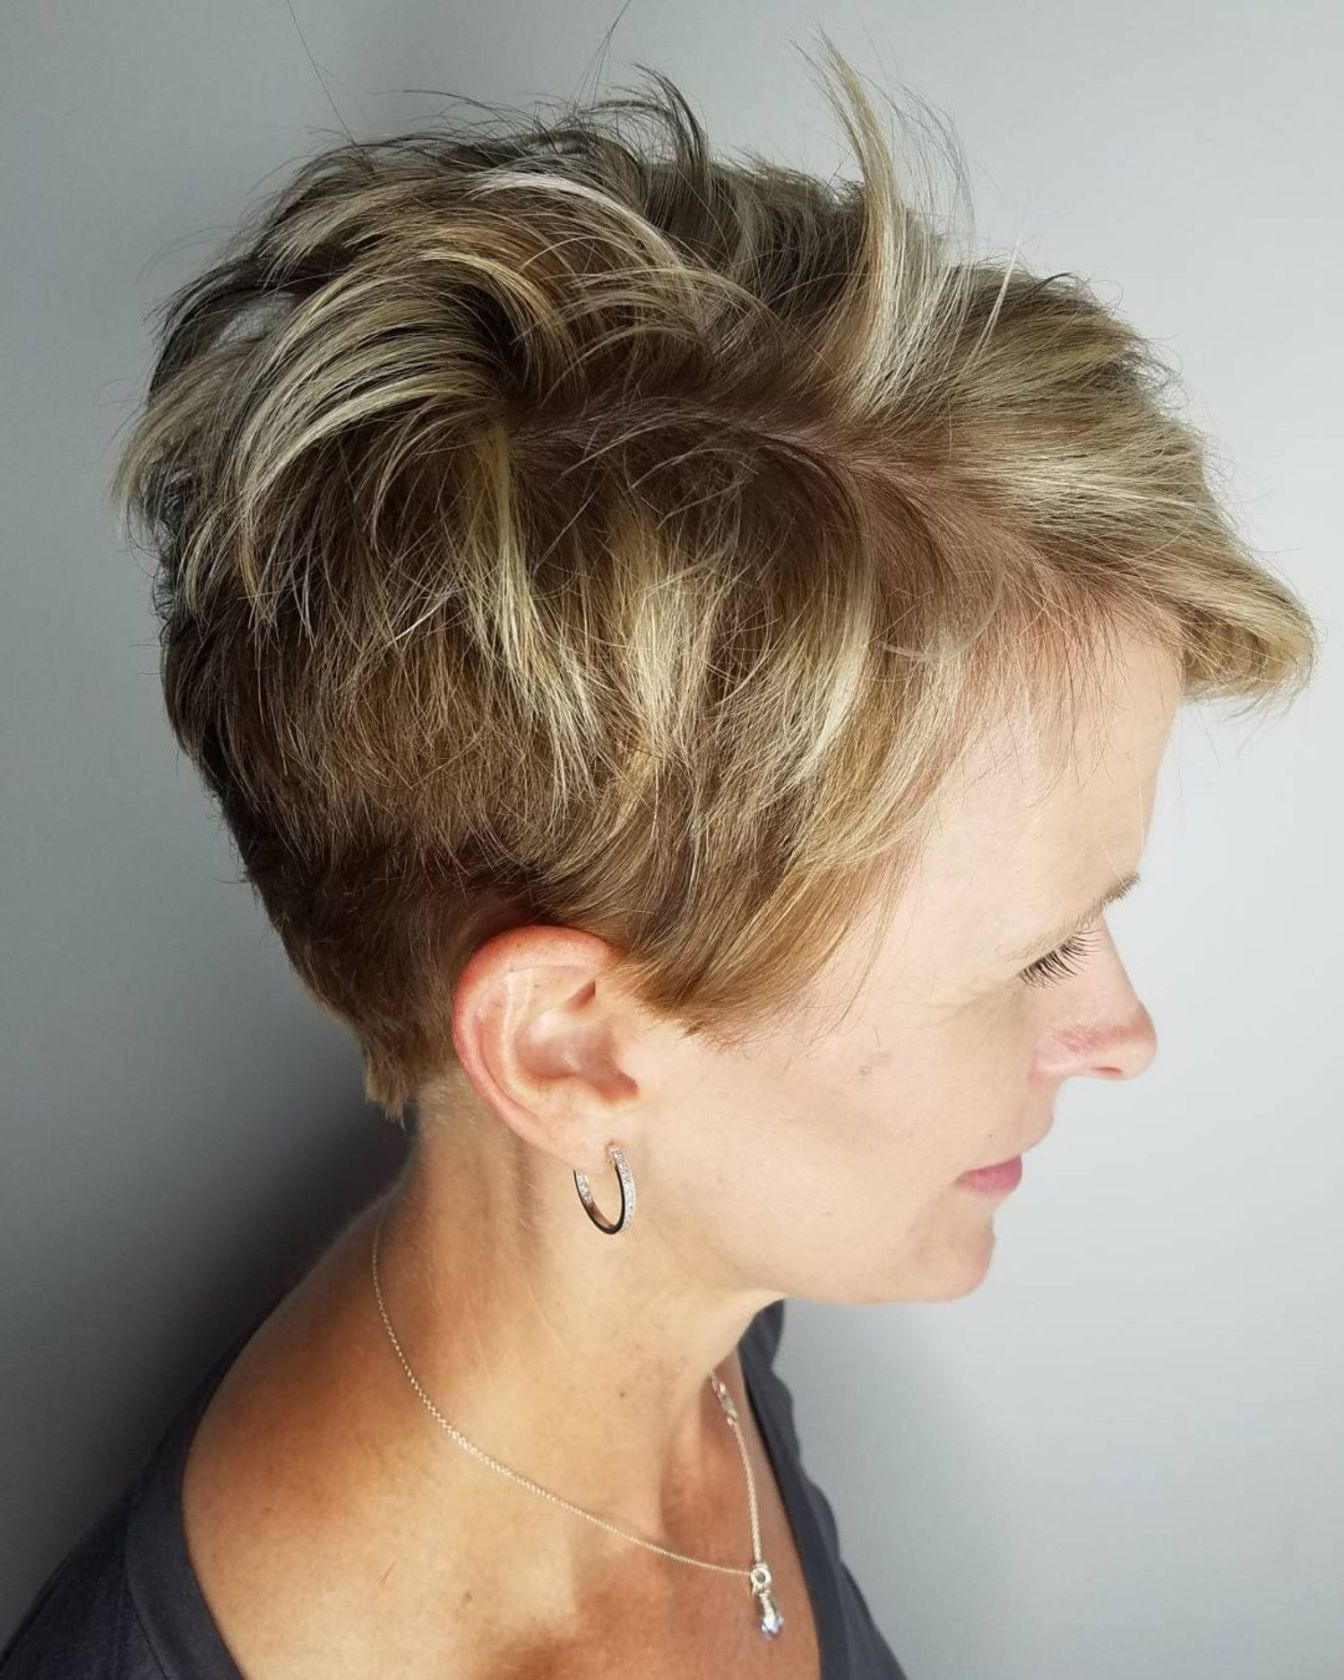 Nose piercing growing over   Classy and Simple Short Hairstyles for Women over   hairamy